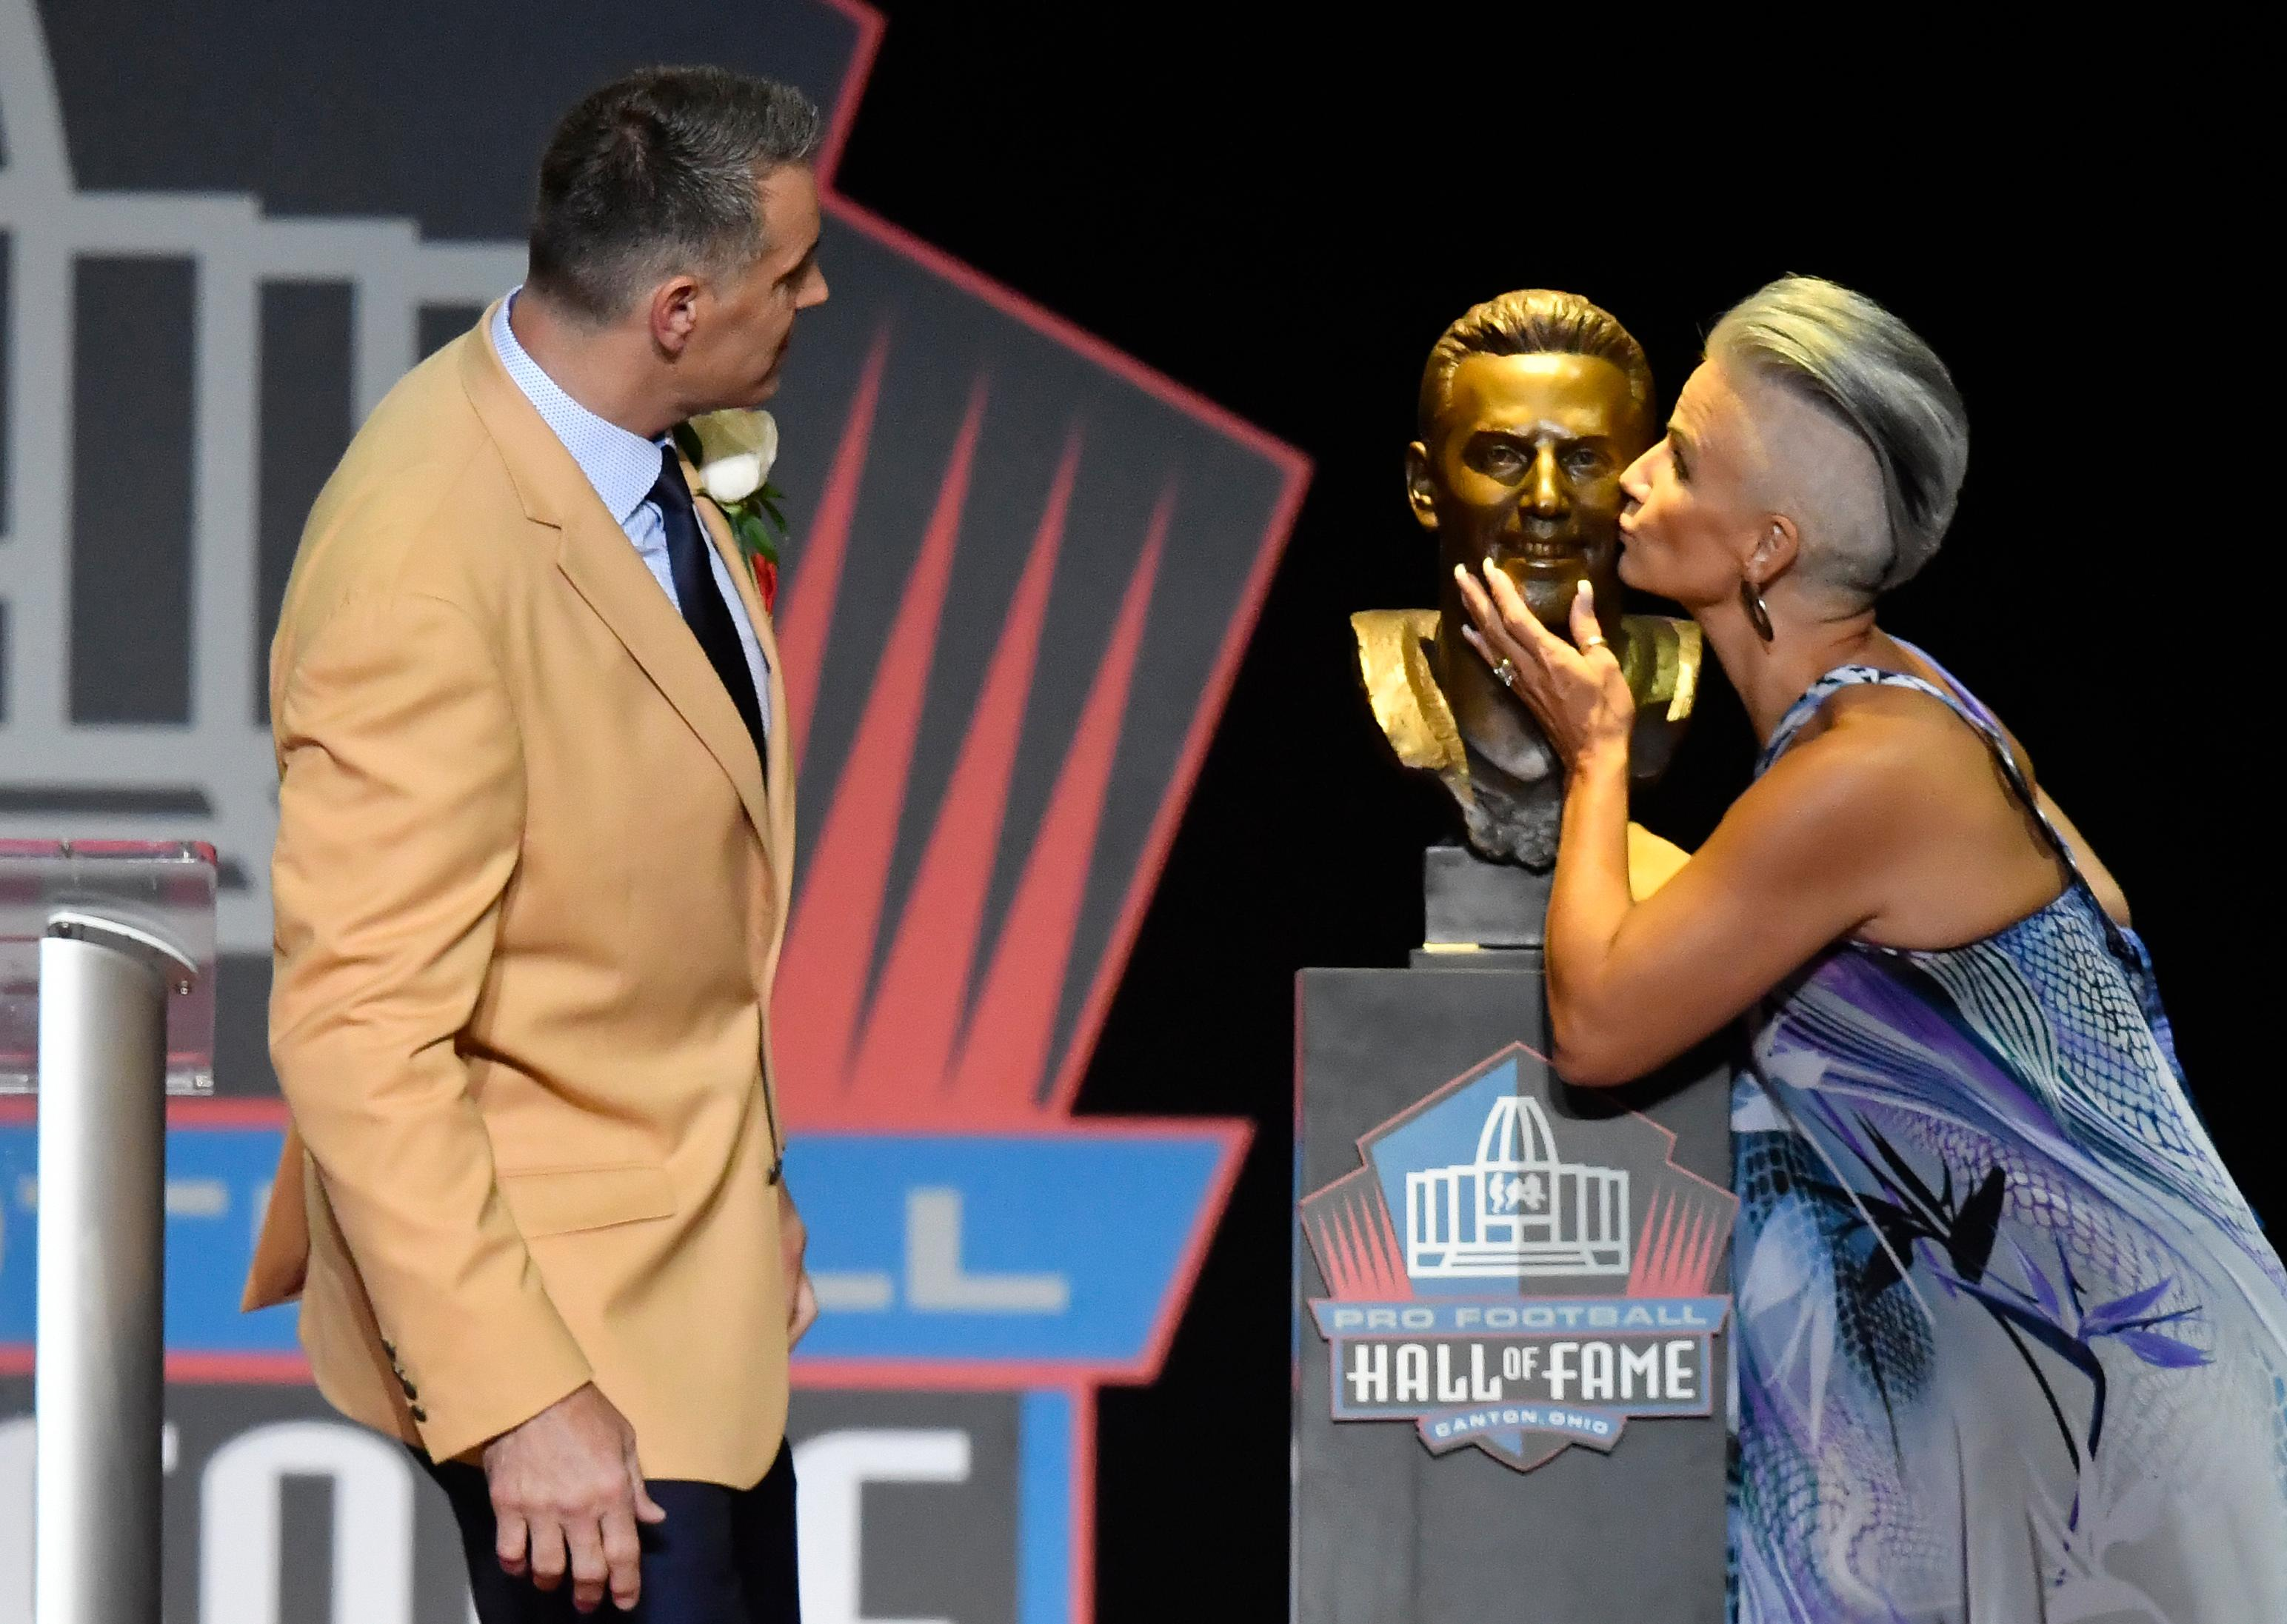 Former NFL quarter Kurt Warner, left, watches as his wife and presenter, Brenda Warner, kisses a bust of him before his speech during inductions at the Pro Football Hall of Fame on Saturday, Aug. 5, 2017, in Canton, Ohio. (AP Photo/David Richard)